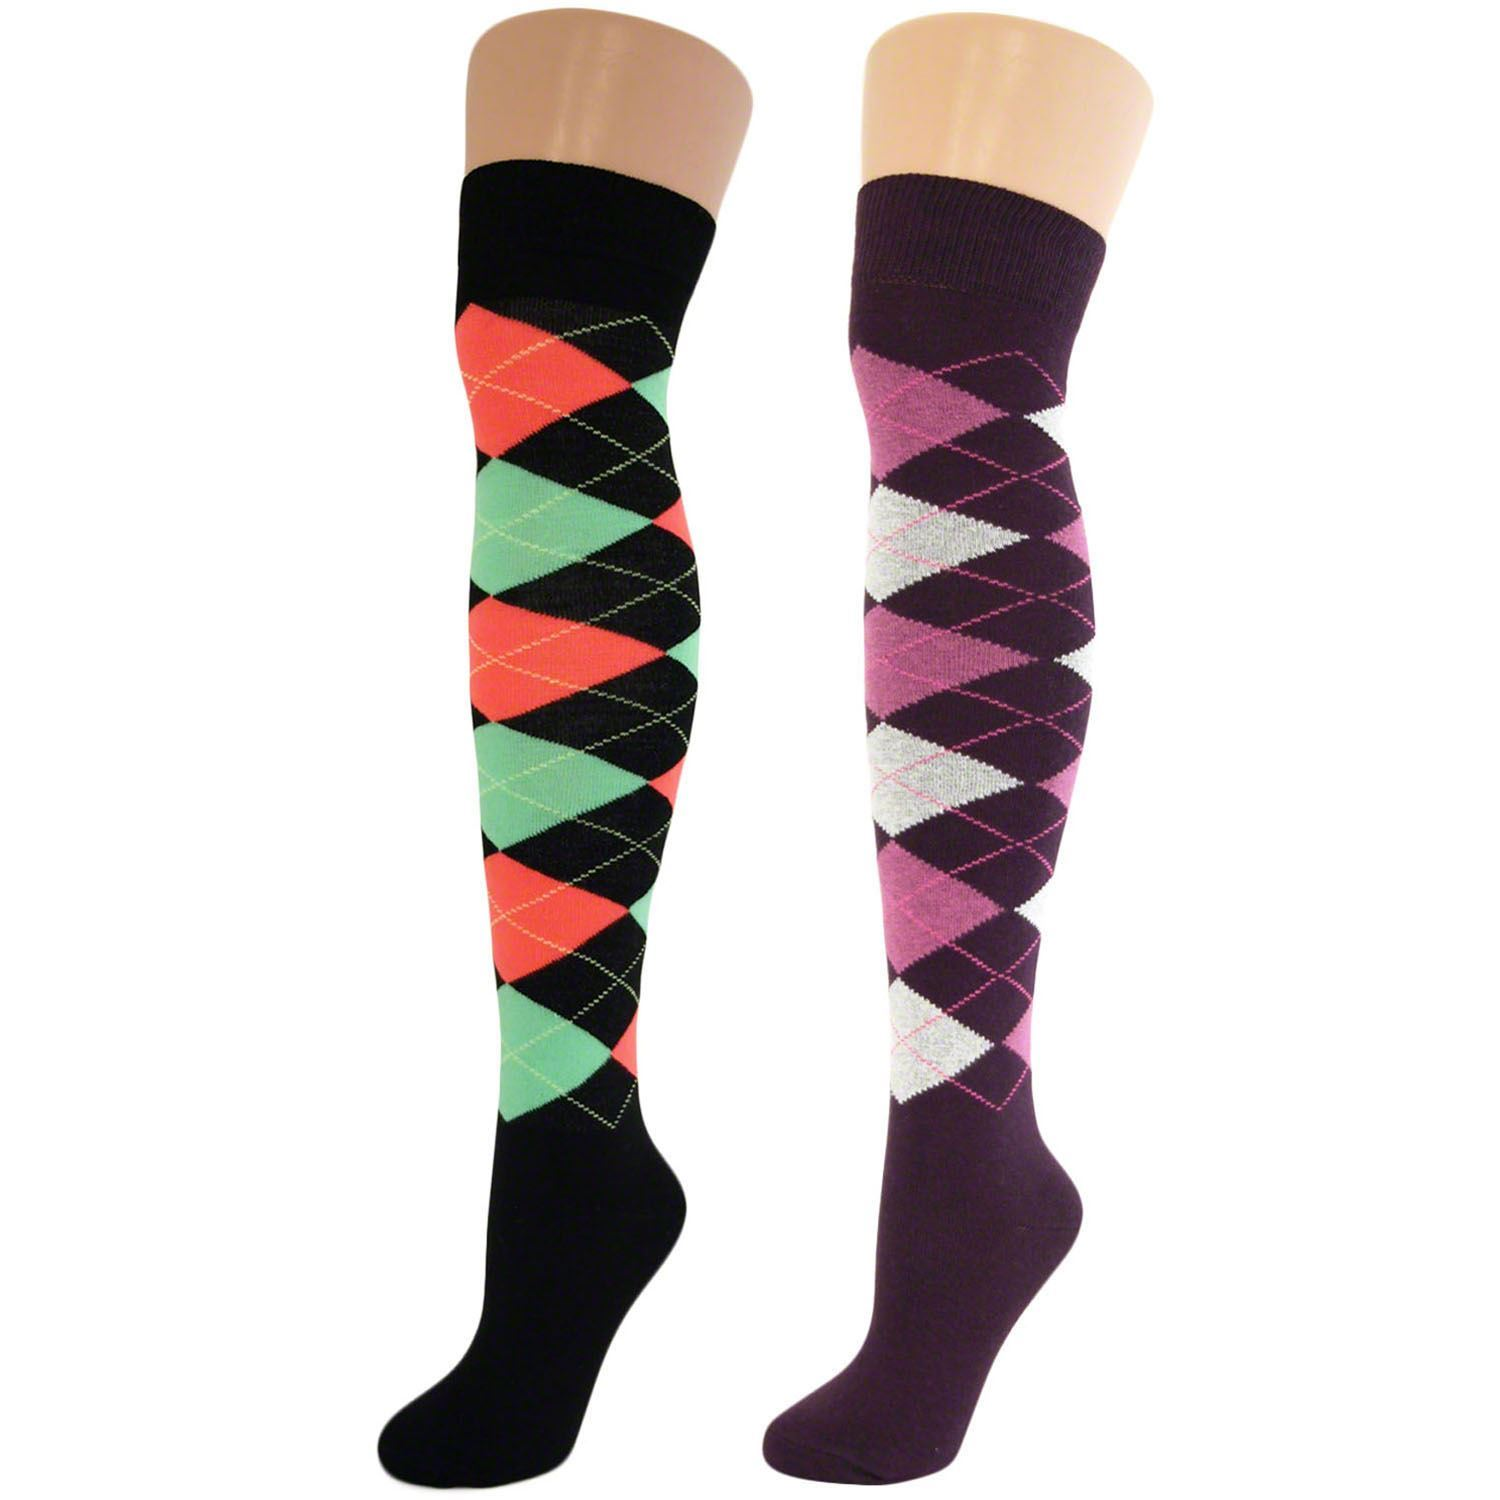 Shop for and buy toddler argyle socks online at Macy's. Find toddler argyle socks at Macy's. Macy's Presents: The Edit- A curated mix of fashion and inspiration Check It Out. Free Shipping with $75 purchase + Free Store Pickup. Contiguous US. Polo Ralph Lauren Toddler Girls Low-Cut Socks .